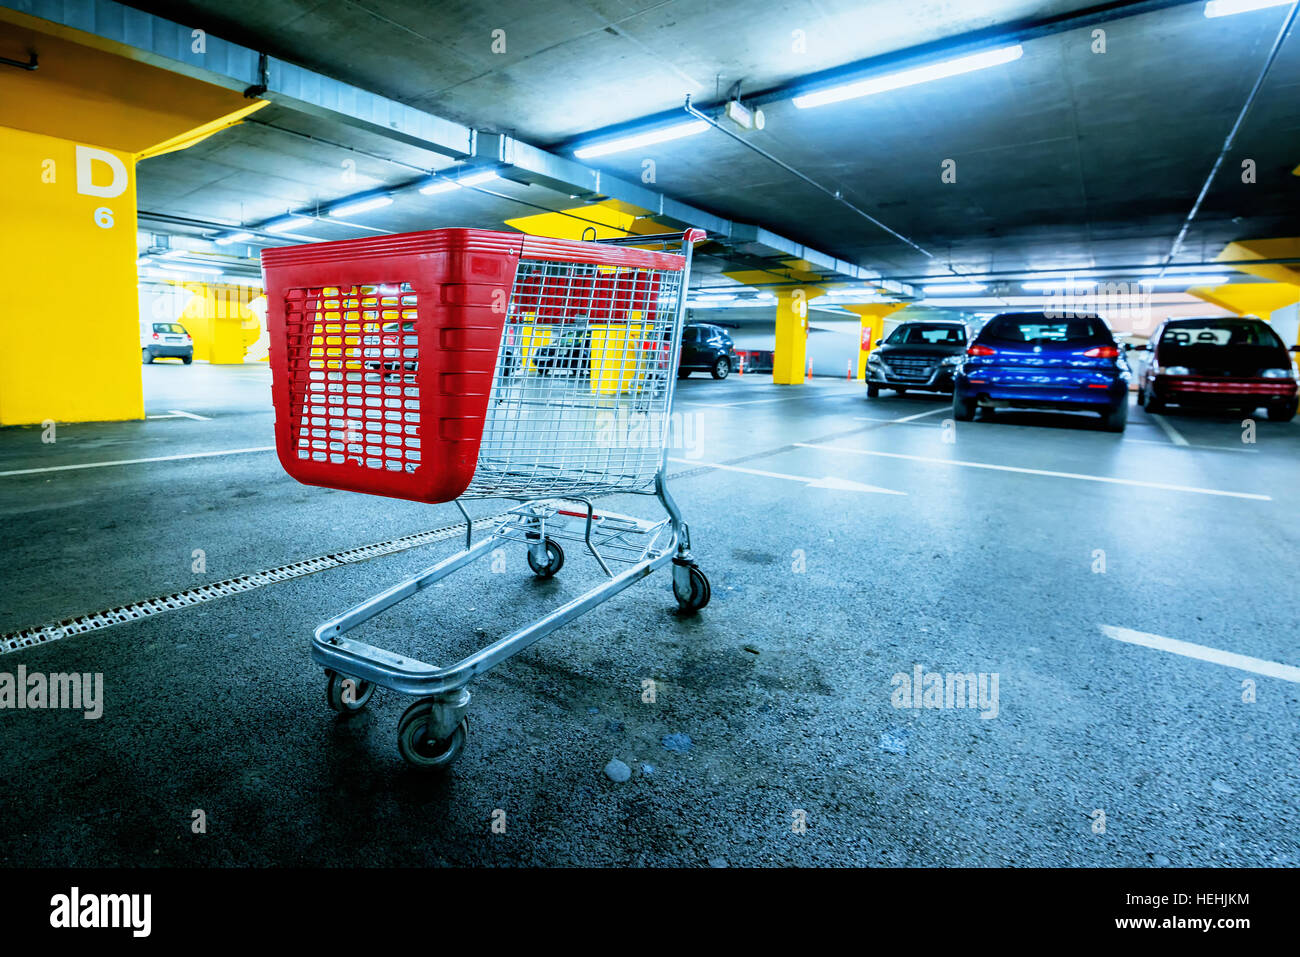 Abandoned empty cart in shopping mall underground garage parking lot, retail and consumerism concept - Stock Image